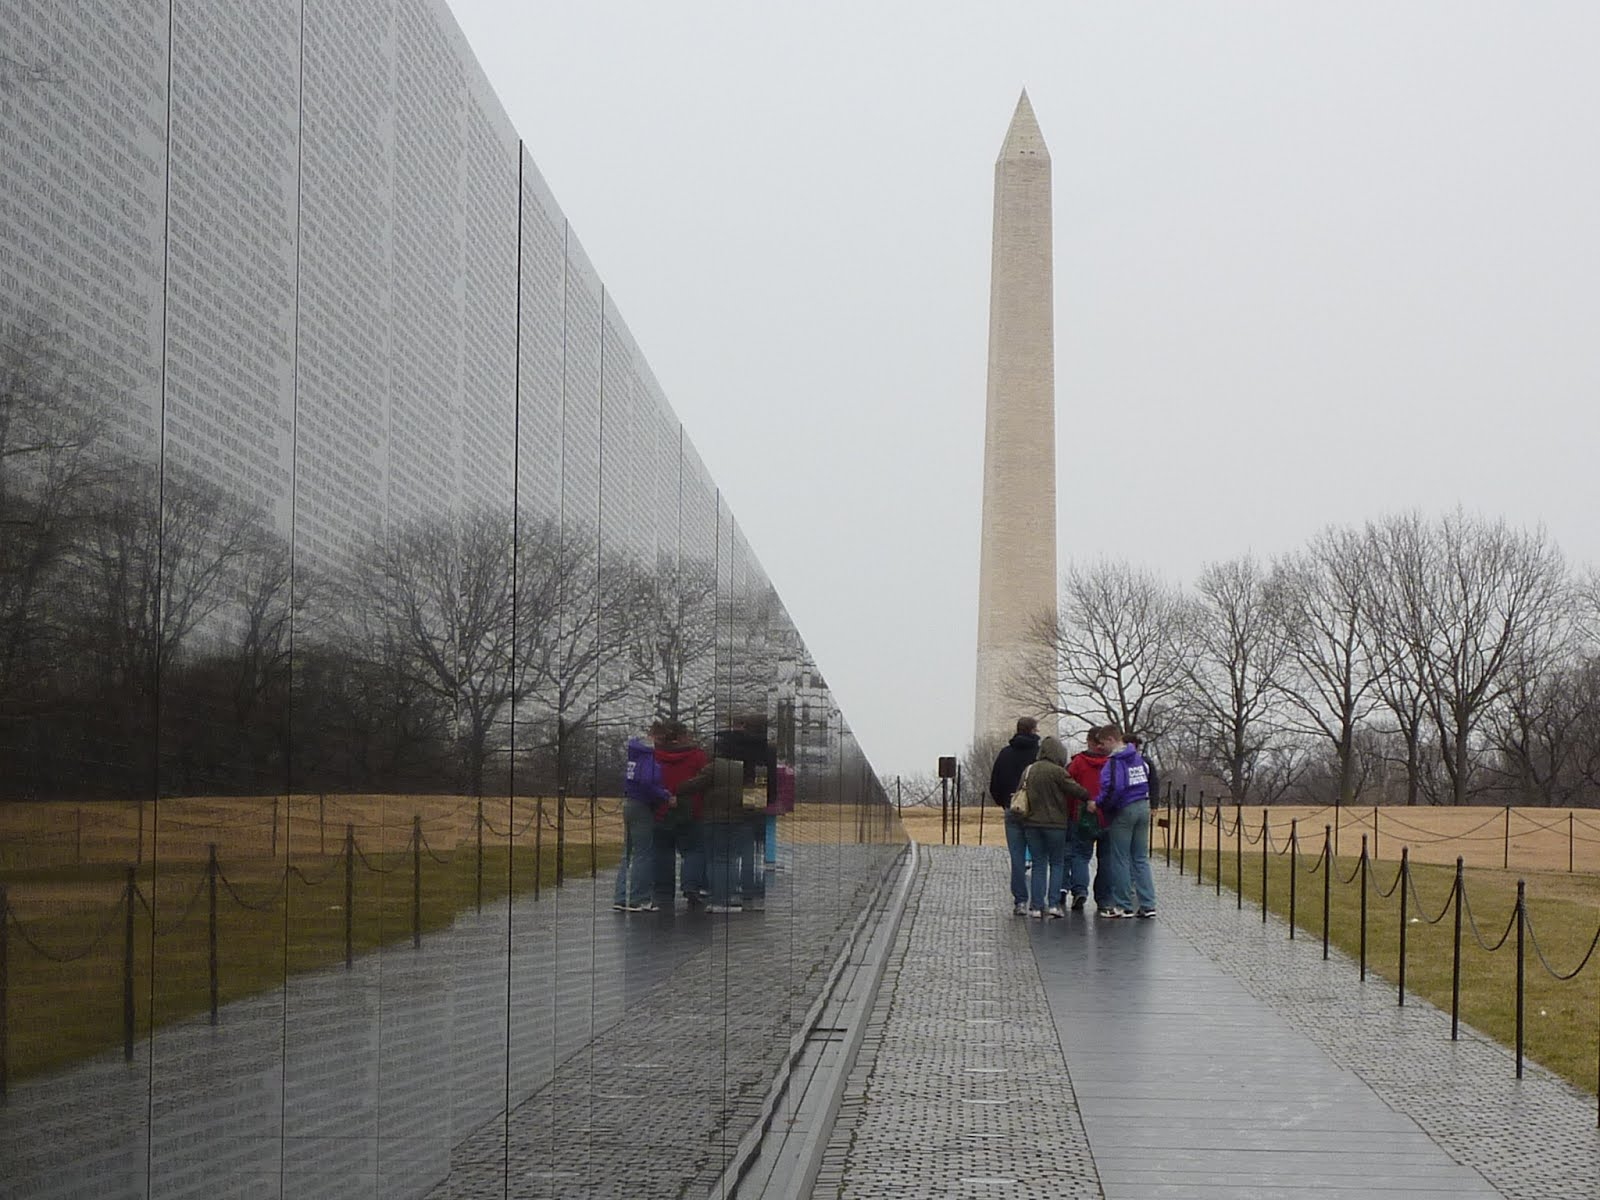 Washington 24.02.2011